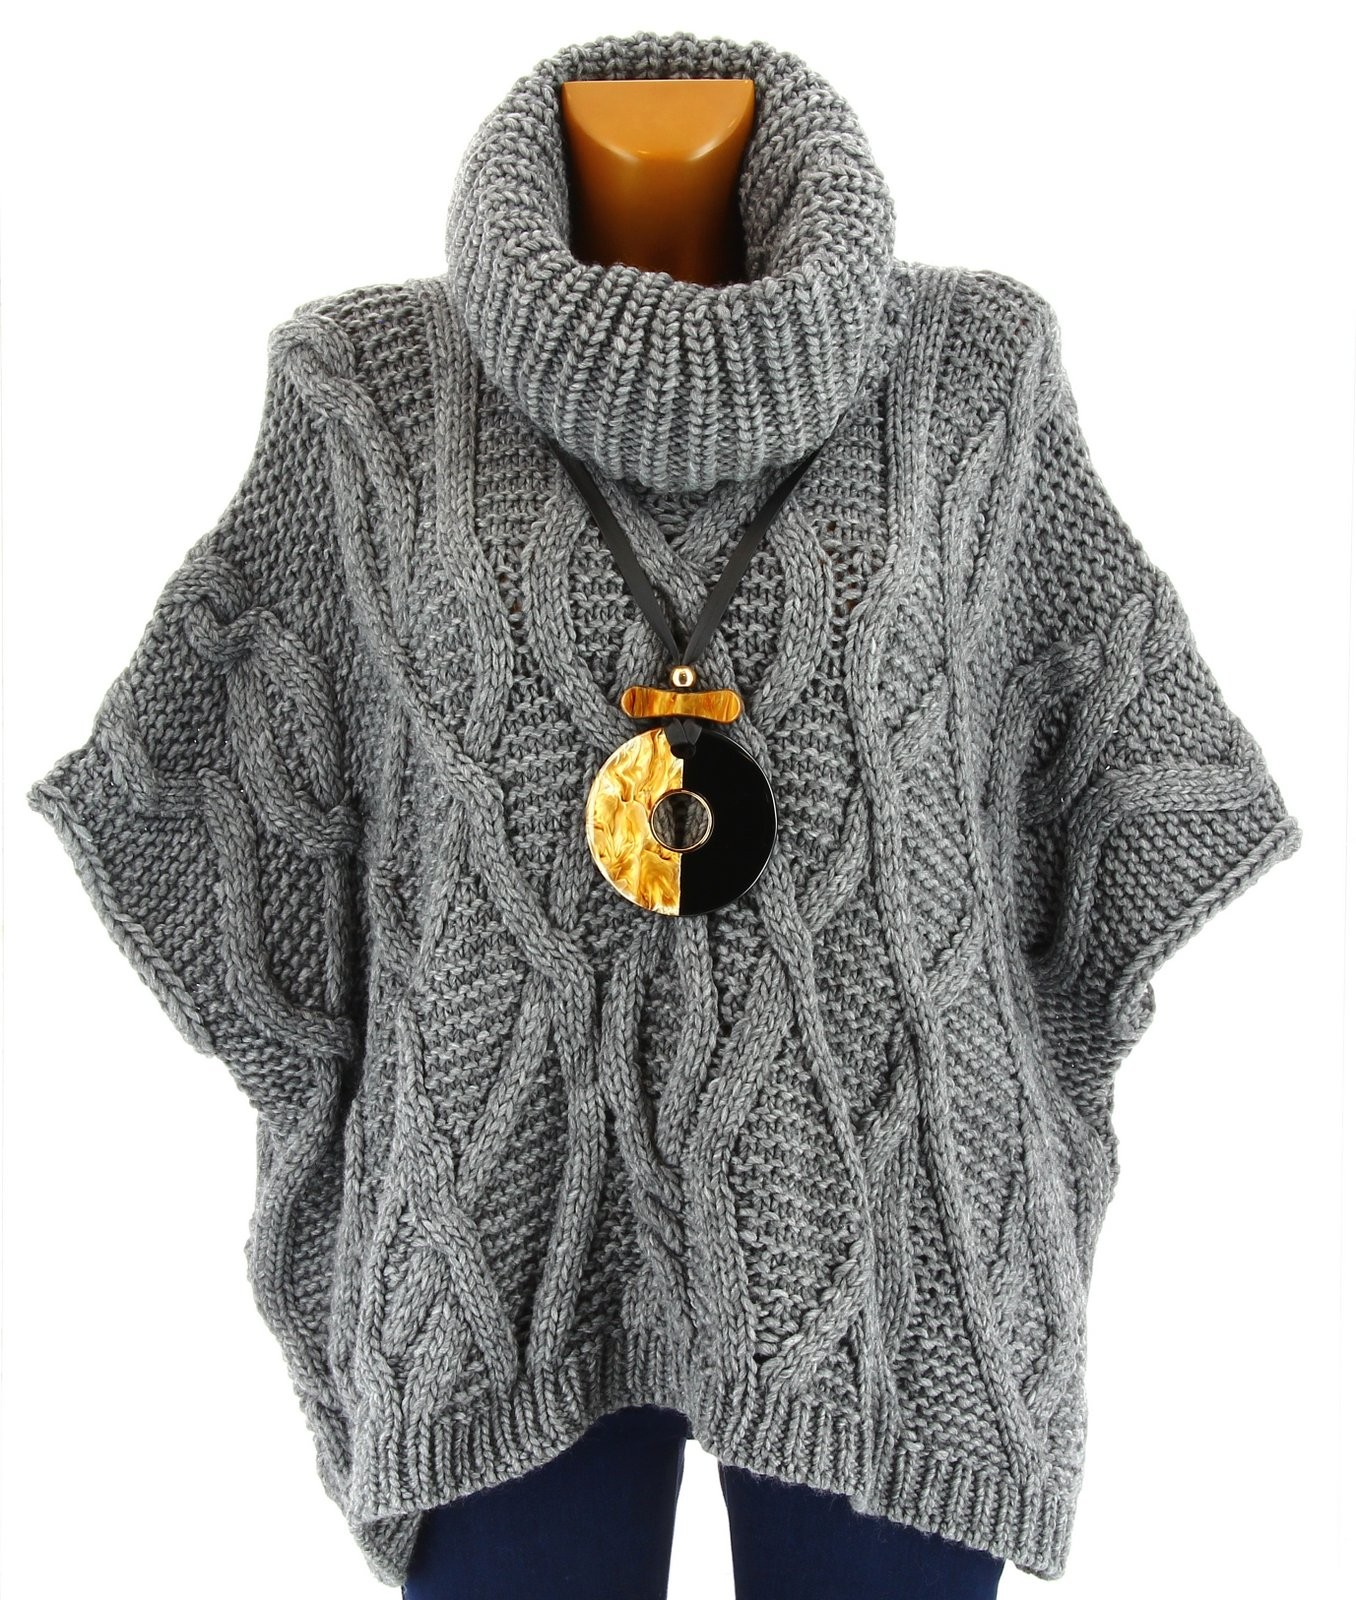 Pull poncho laine mohair grosse maille hiver gris sorenza gris ebay - Laine grosse maille ...